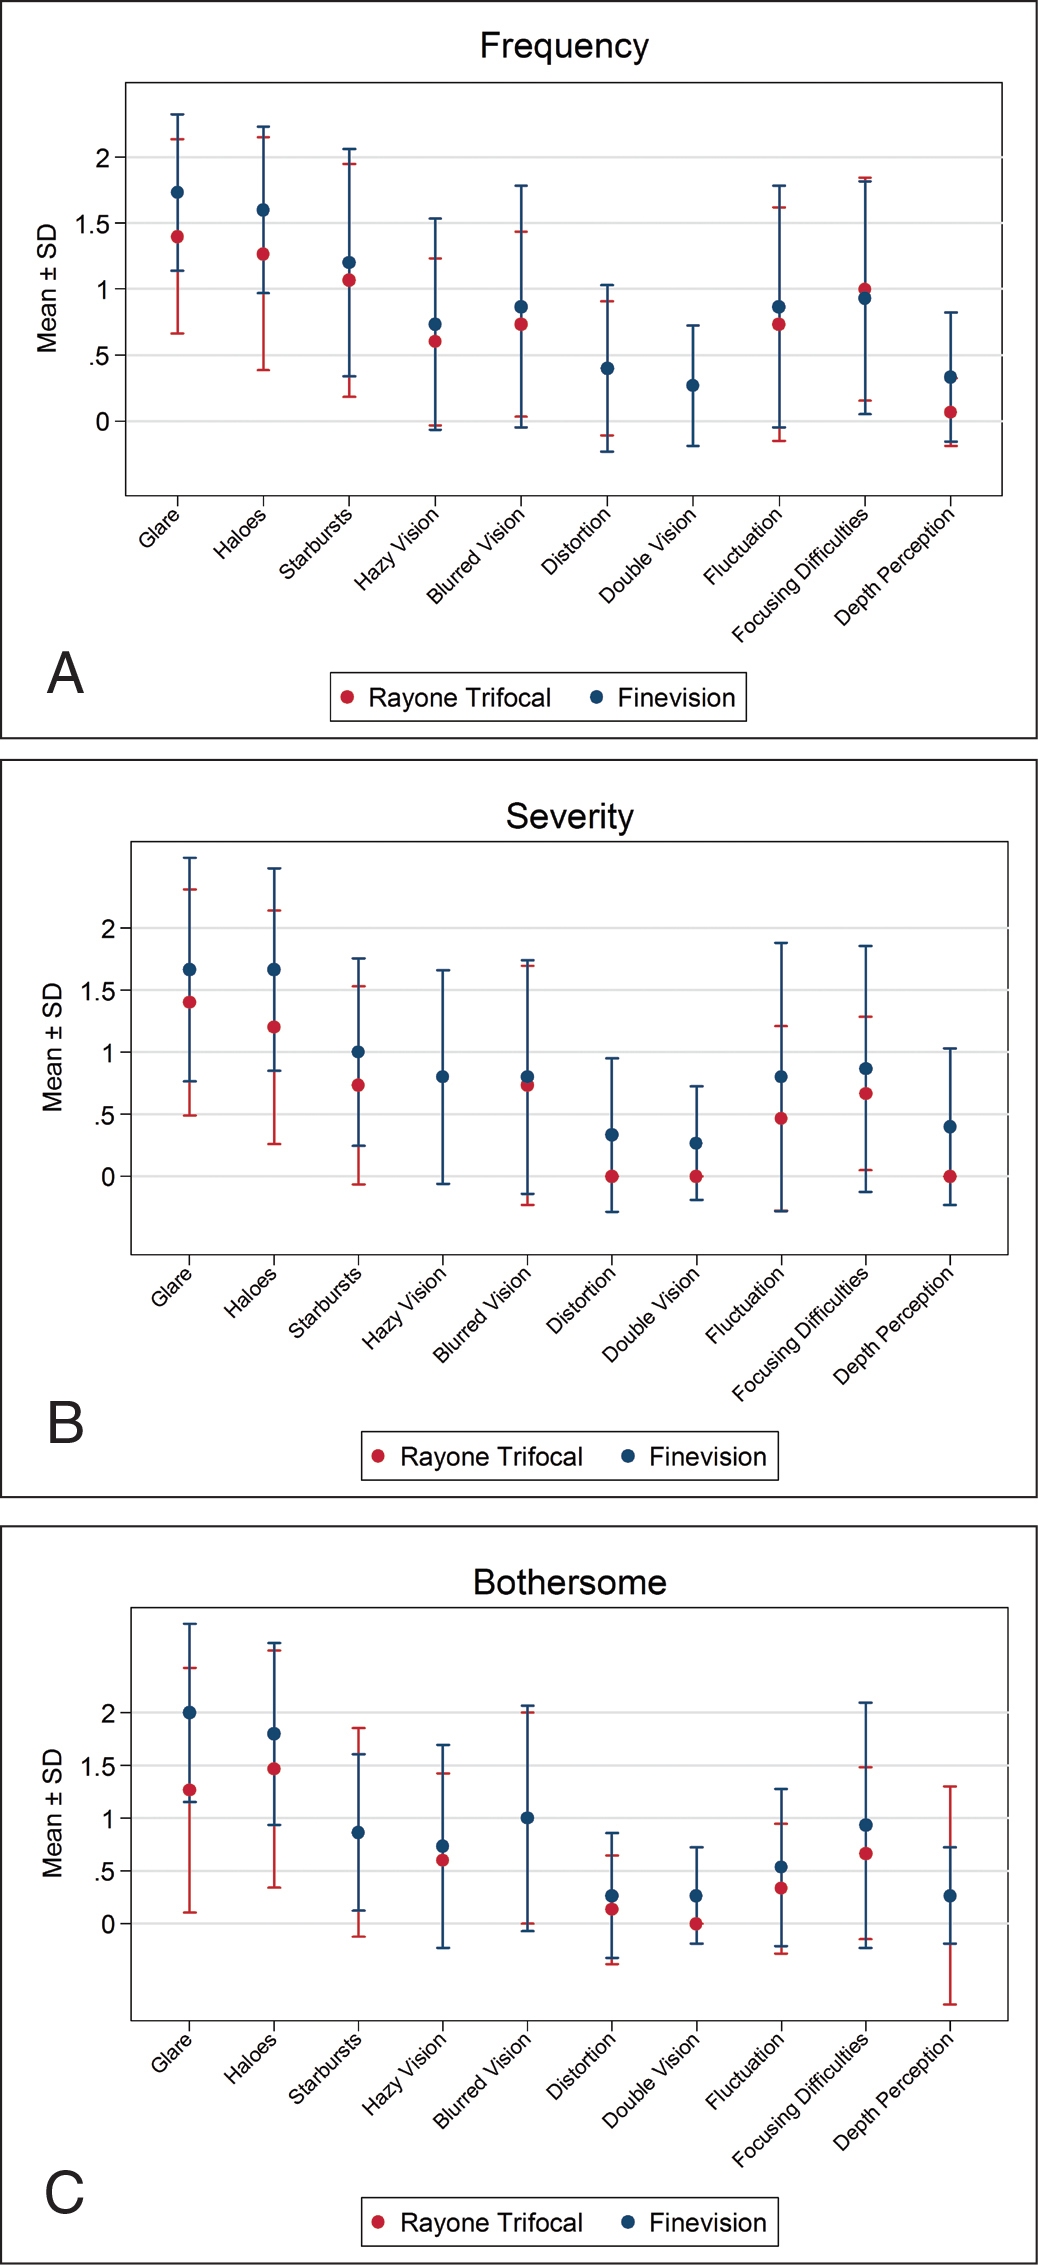 Results of the McAlinden questionnaire on the visual quality of life outcomes in terms of (A) frequency, (B) severity, and (C) bothersomeness. The RayOne Trifocal intraocular lens is manufactured by Rayner, Worthing, UK, and the FineVision POD F intraocular lens is manufactured by PhysIOL, Liège, Belgium.